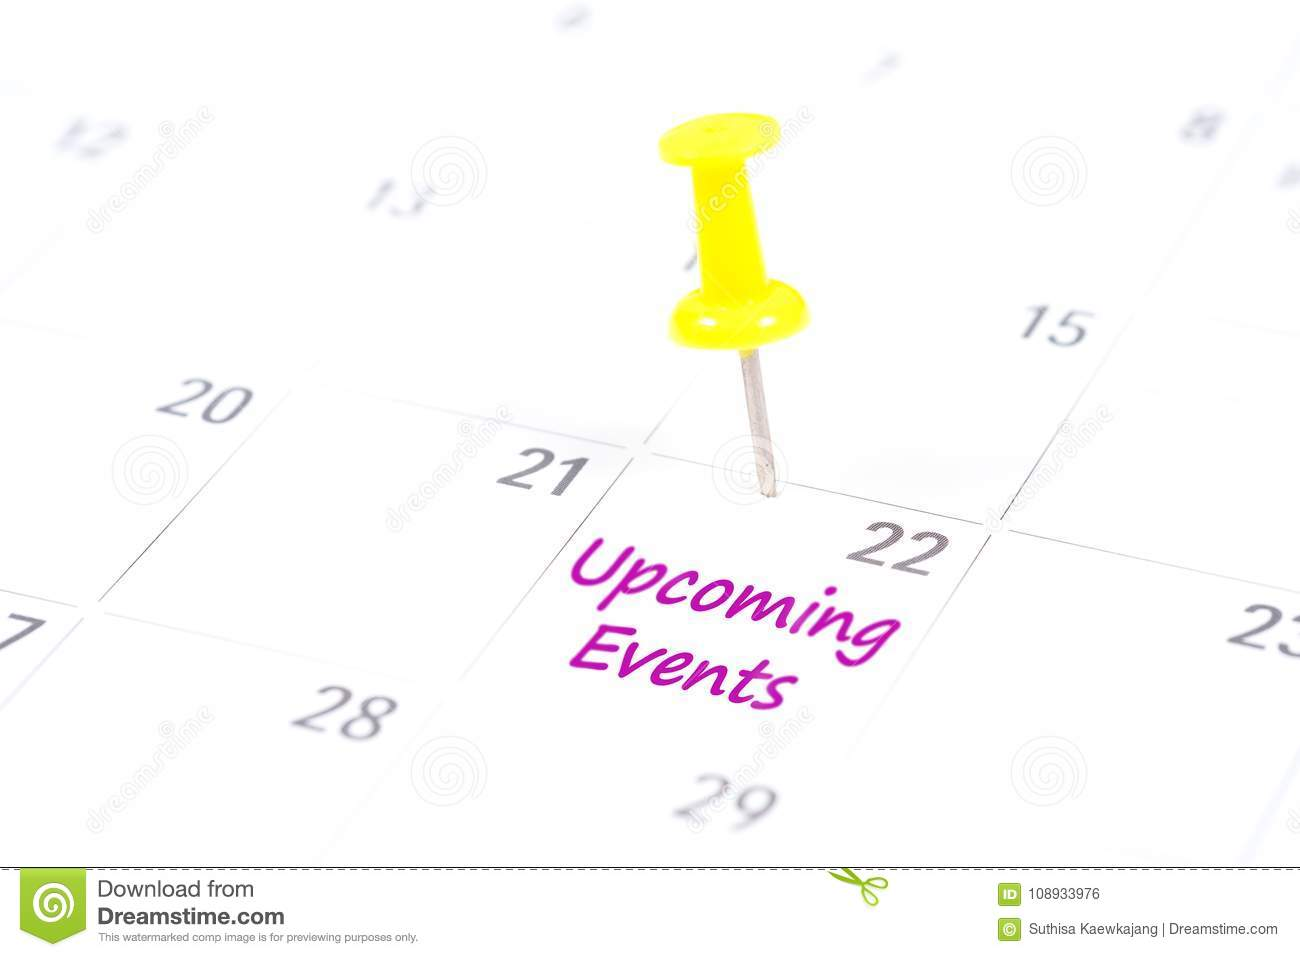 Upcoming Events written on a calendar with a yellow push pin to